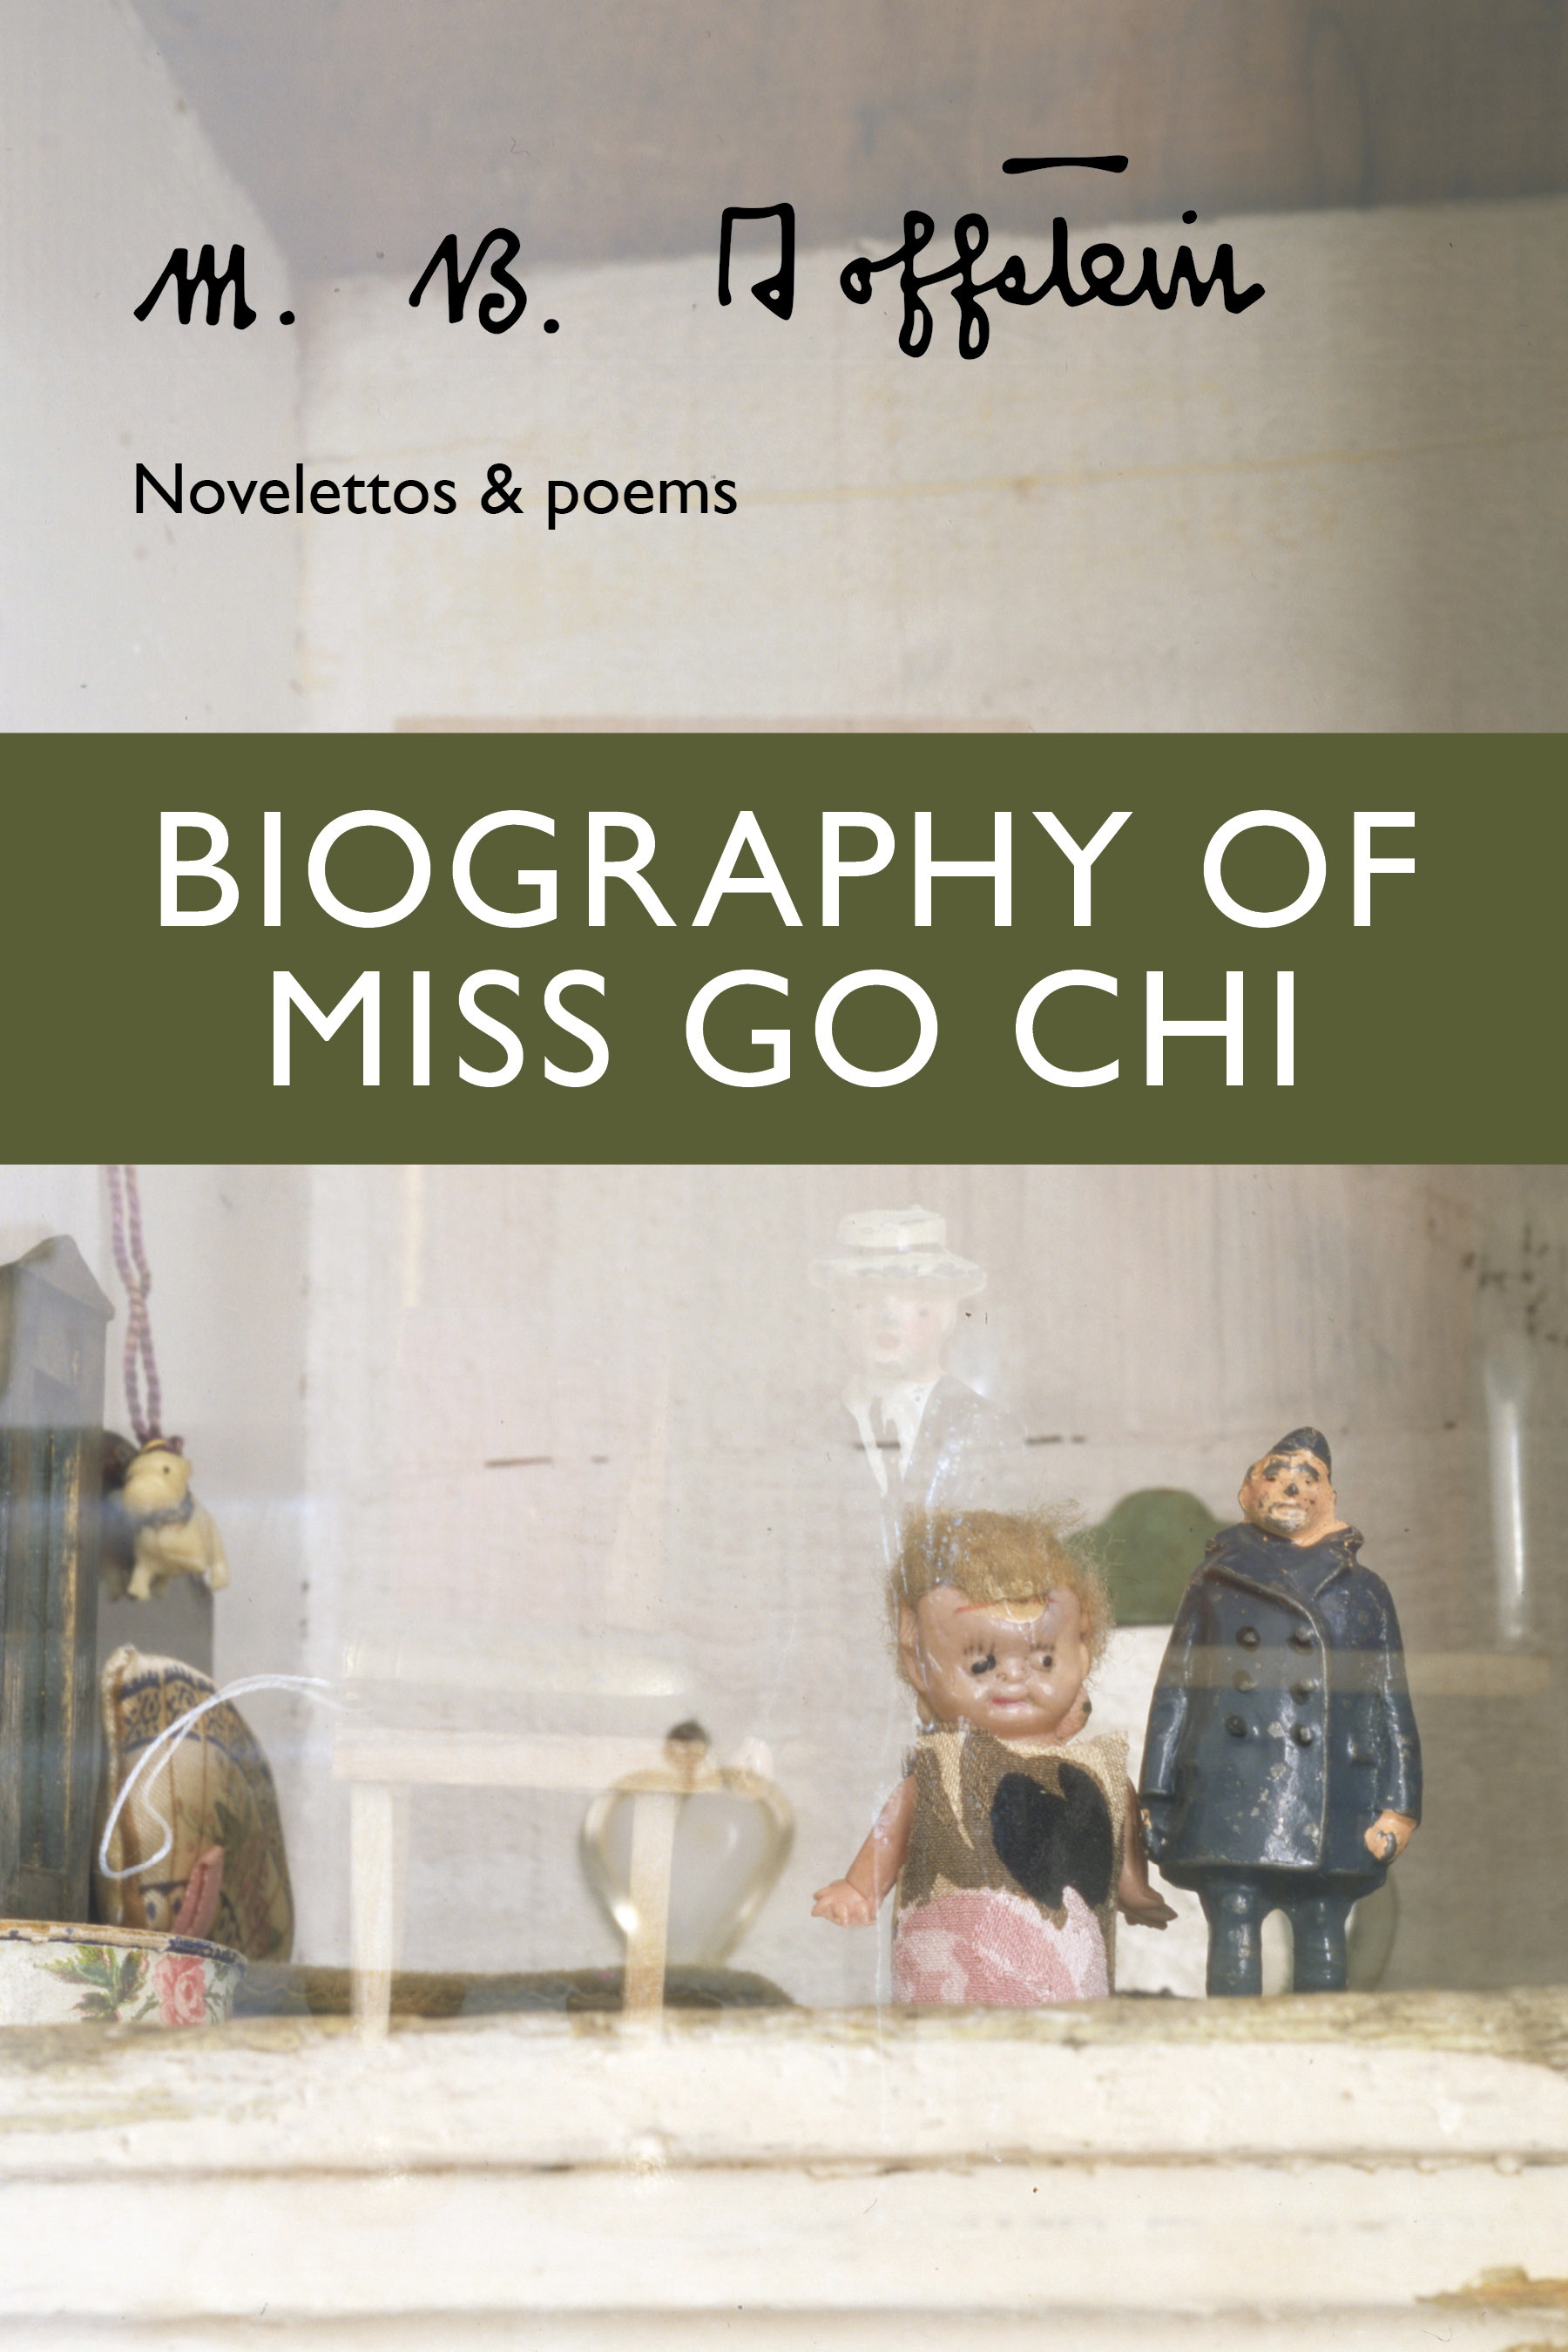 Biography of Miss Go Chi book cover